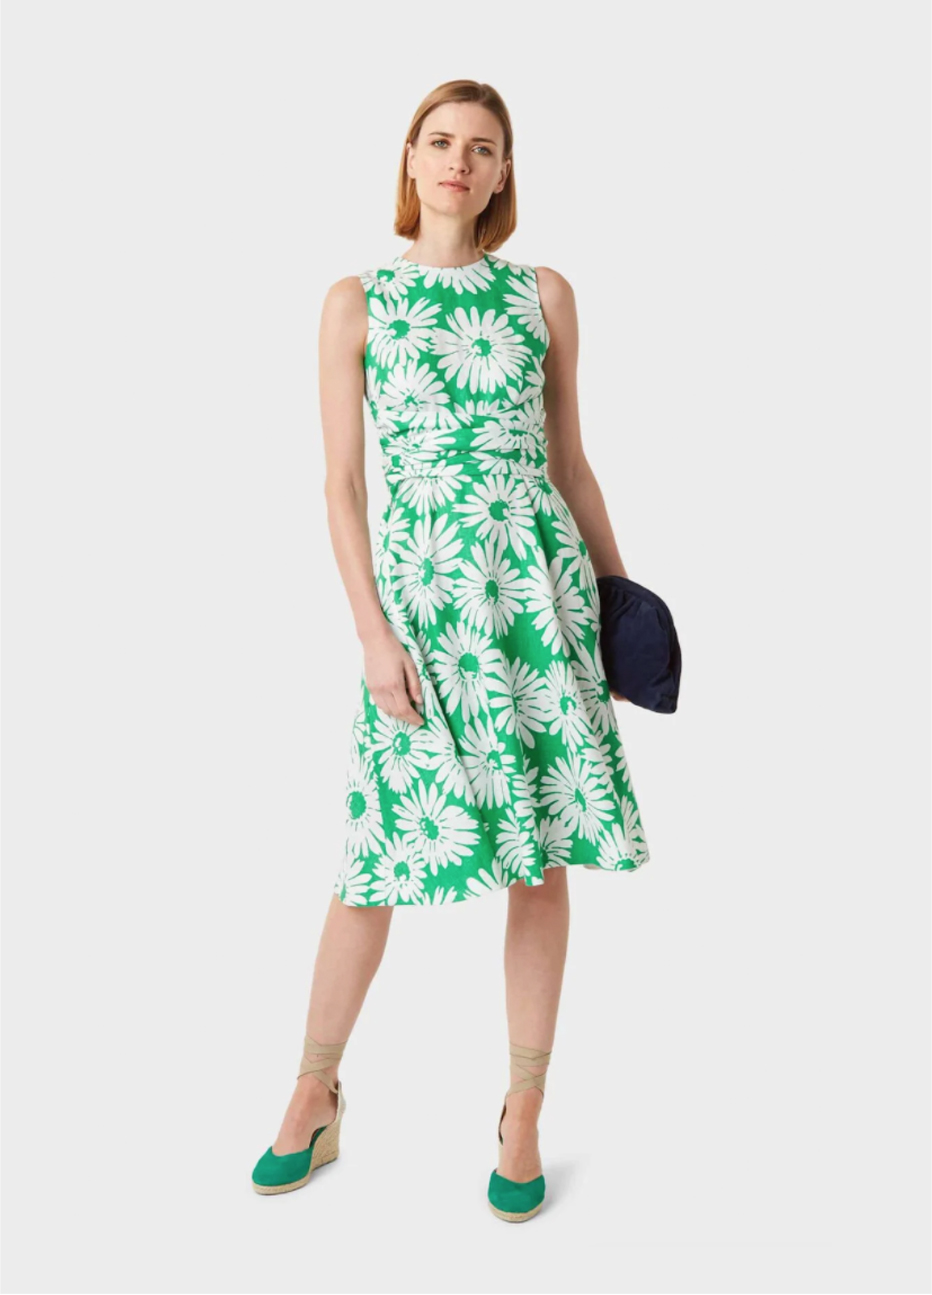 Green fit and flare shift dress with a floral pattern paired with wedge espadrilles in green and a black clutch bag, by Hobbs.